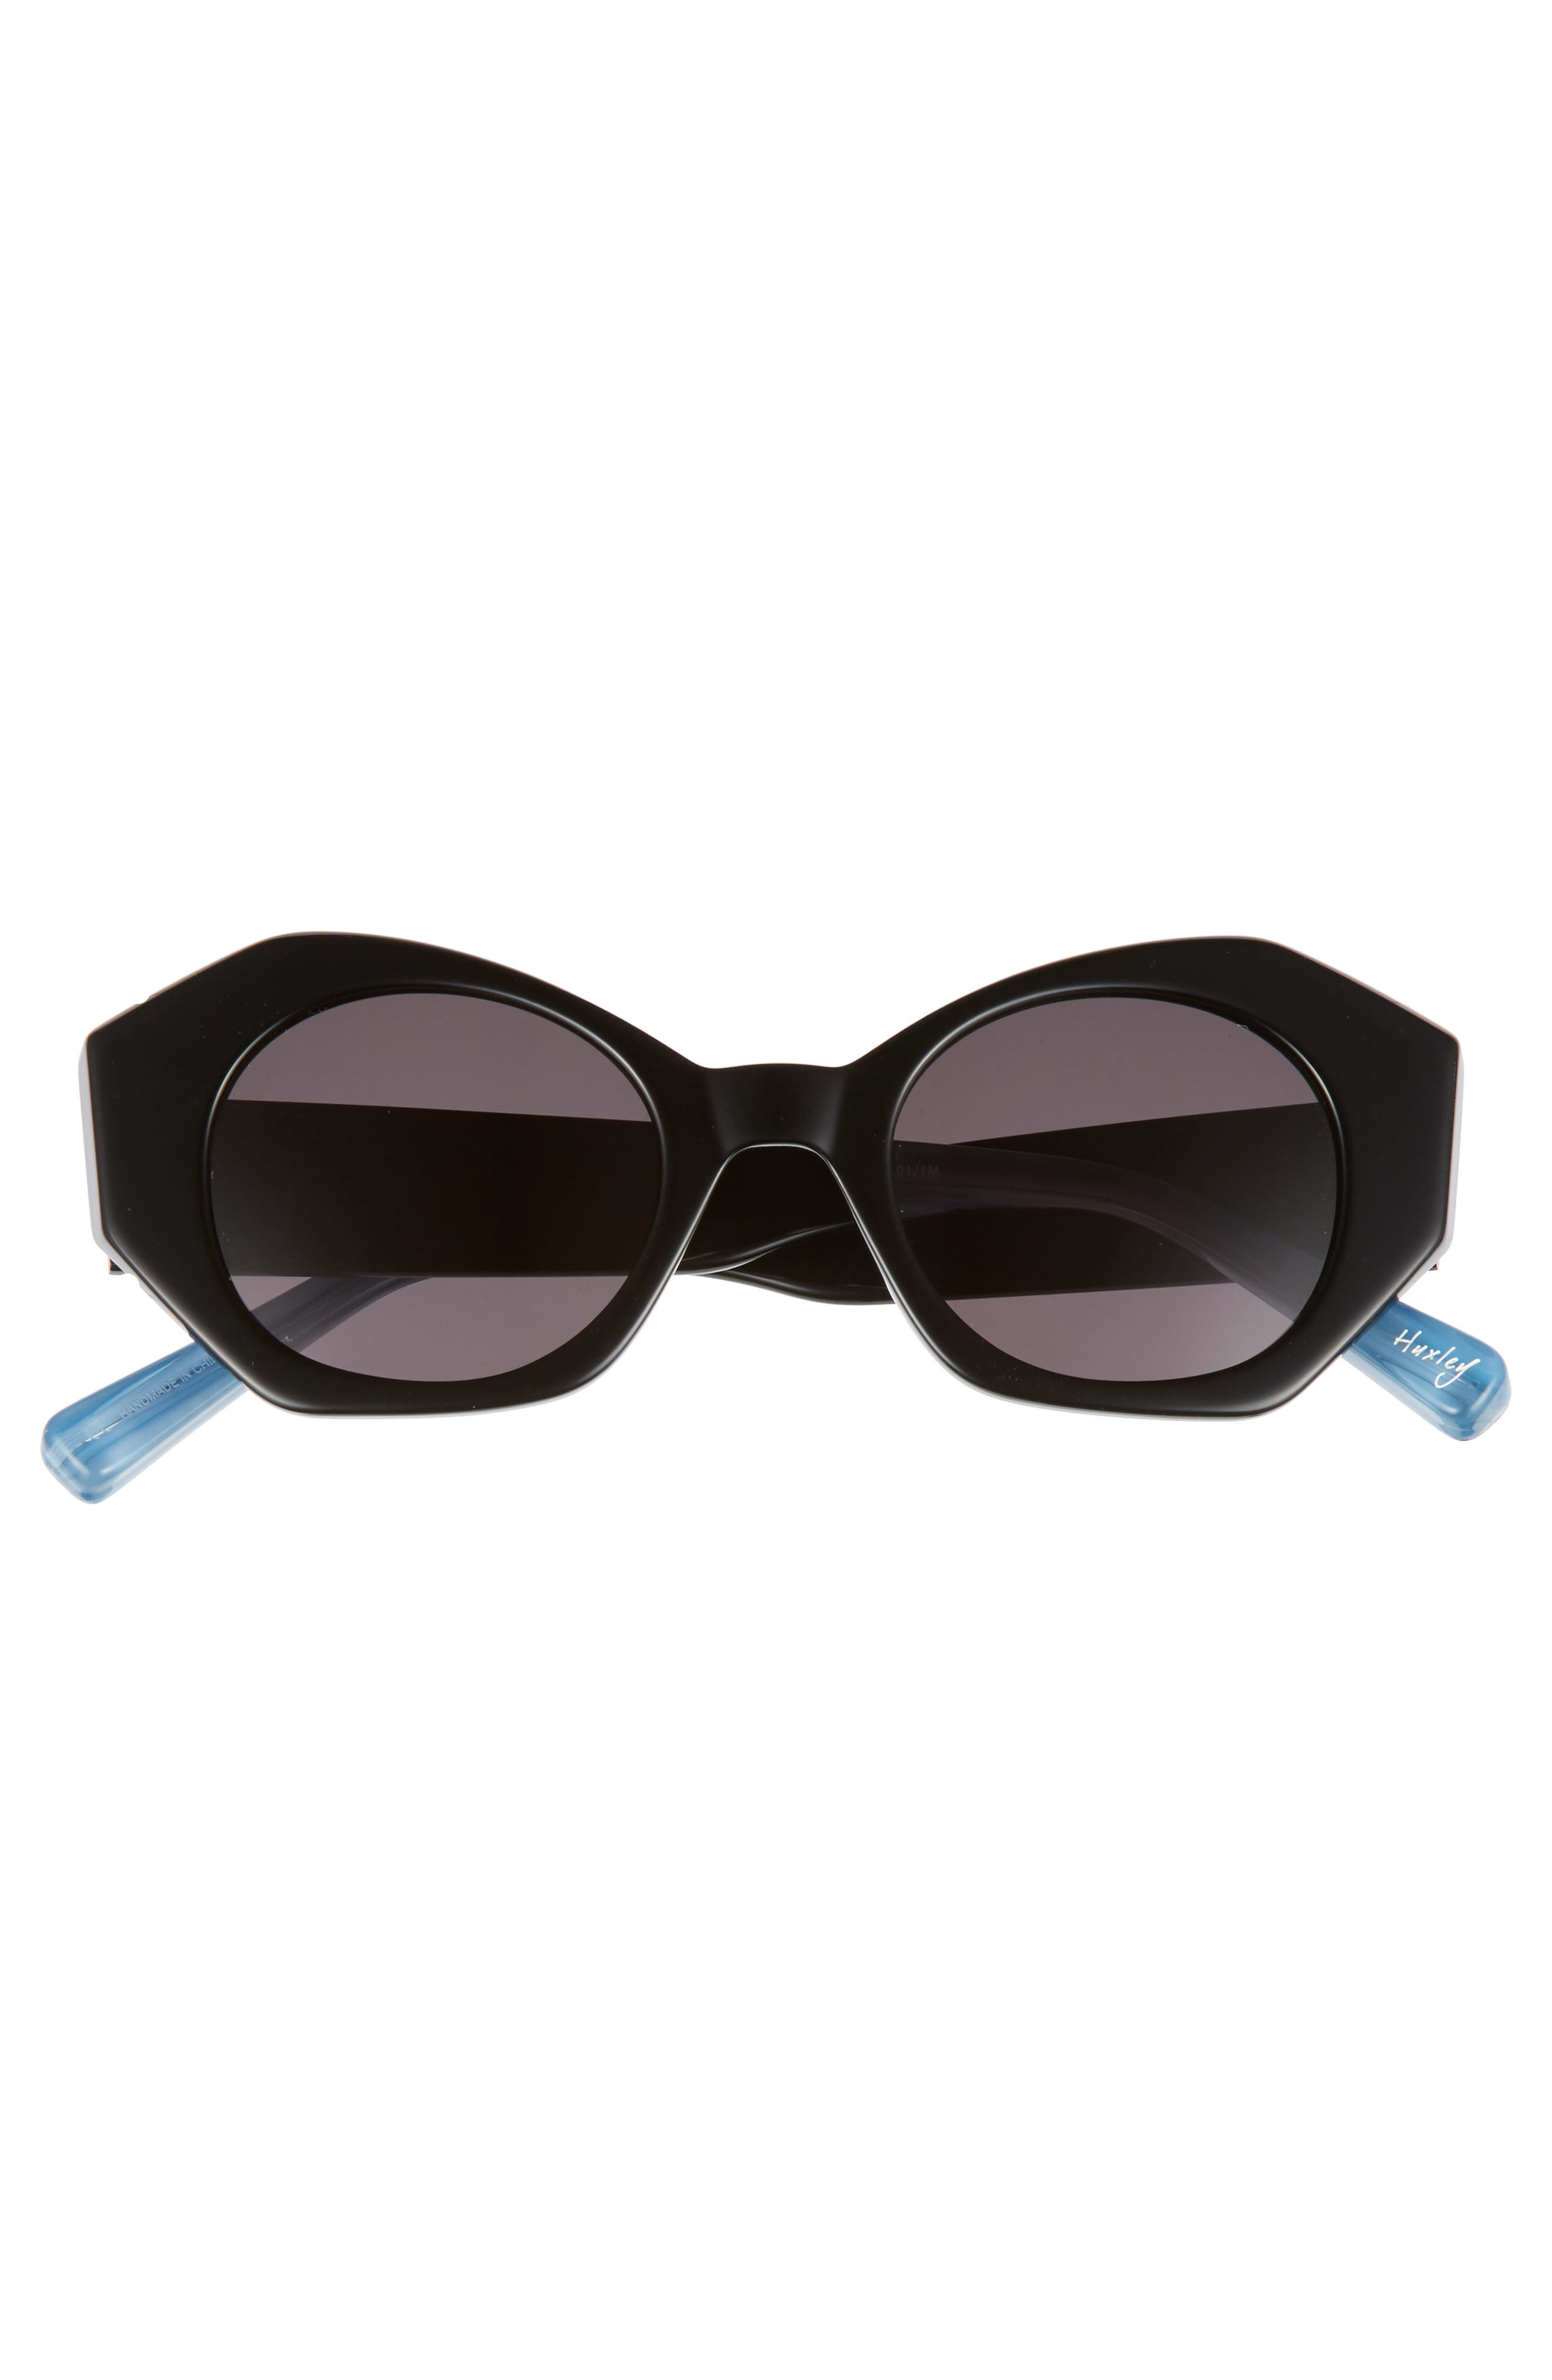 Huxley 46mm Geometric Sunglasses,                             Alternate thumbnail 5, color,